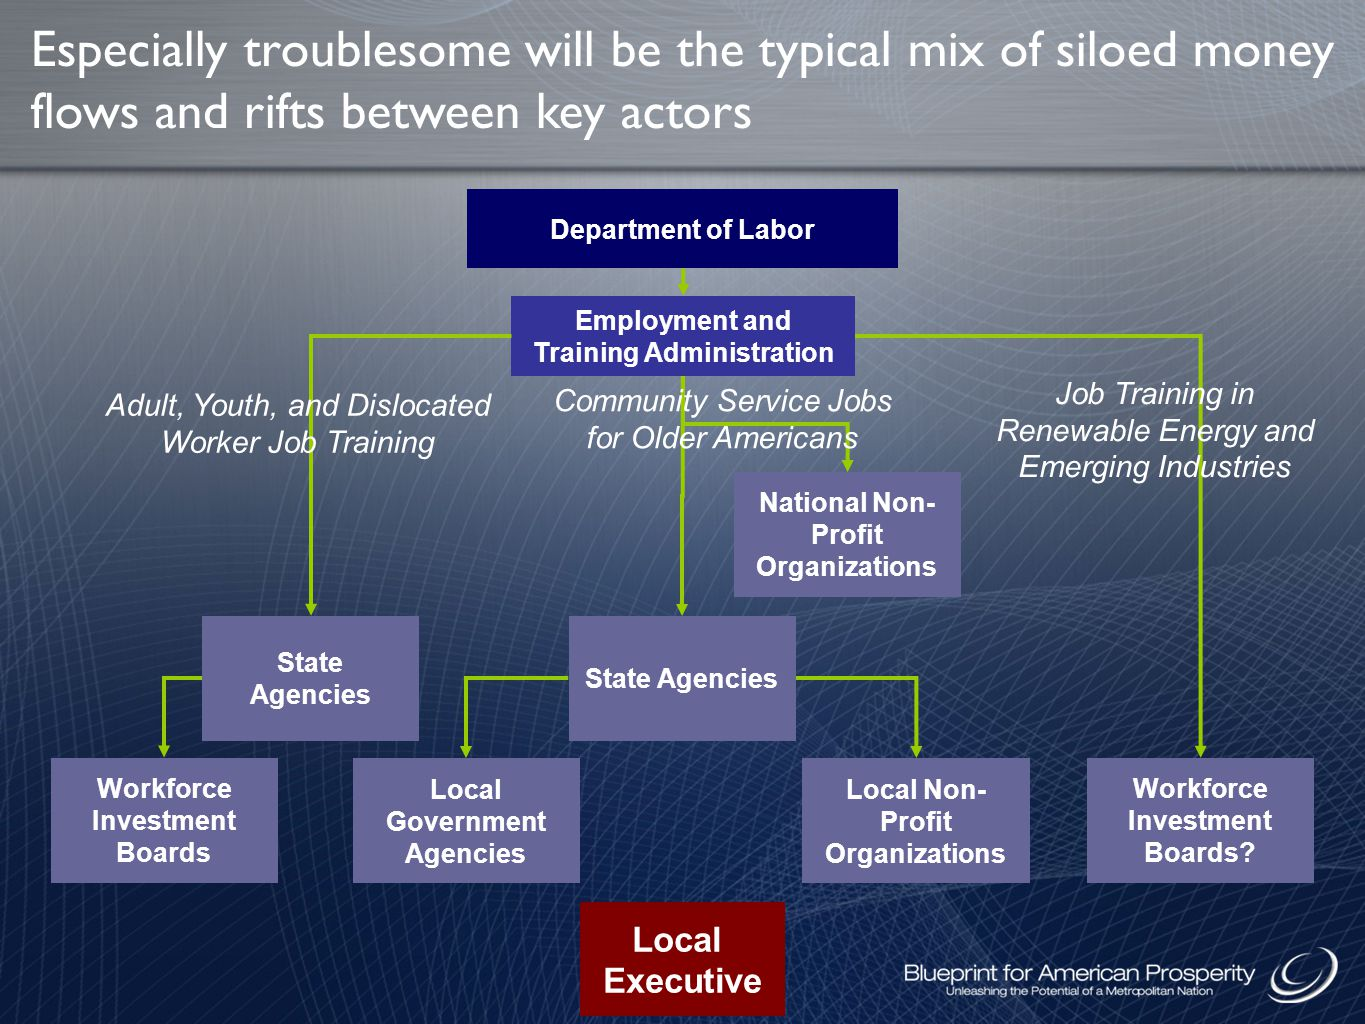 Especially troublesome will be the typical mix of siloed money flows and rifts between key actors Department of Labor Local Executive State Agencies Local Government Agencies Employment and Training Administration National Non- Profit Organizations State Agencies Local Non- Profit Organizations Workforce Investment Boards Workforce Investment Boards.